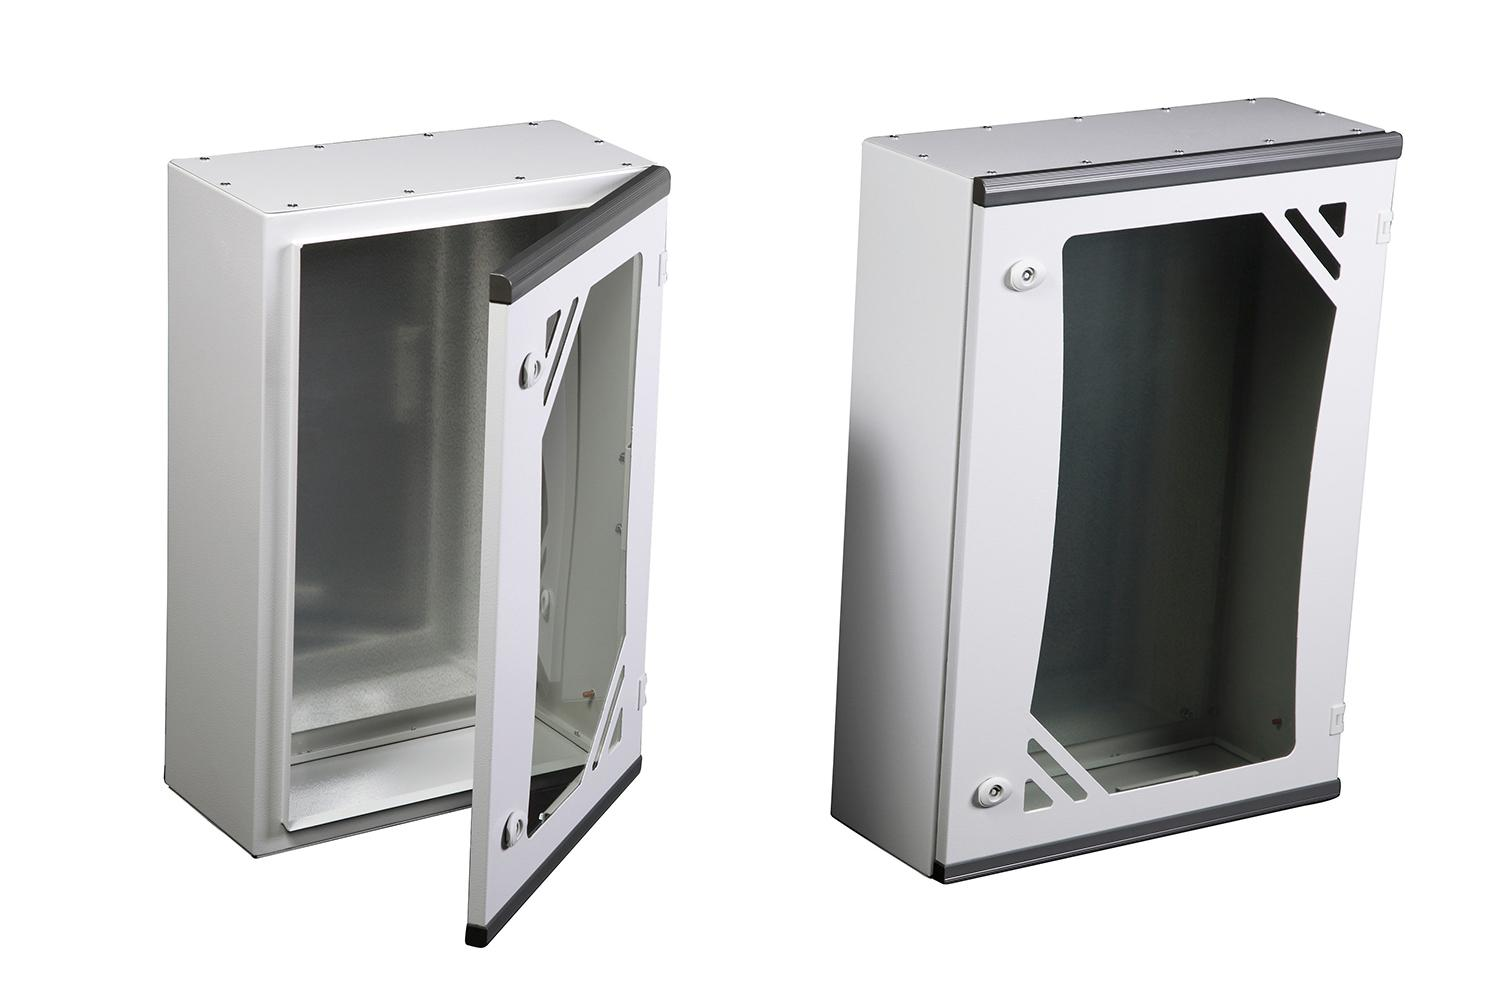 ARES Series WALL MOUNTED ENCLOSURES - GLAZED DOOR, WITH MOUNTING PLATE